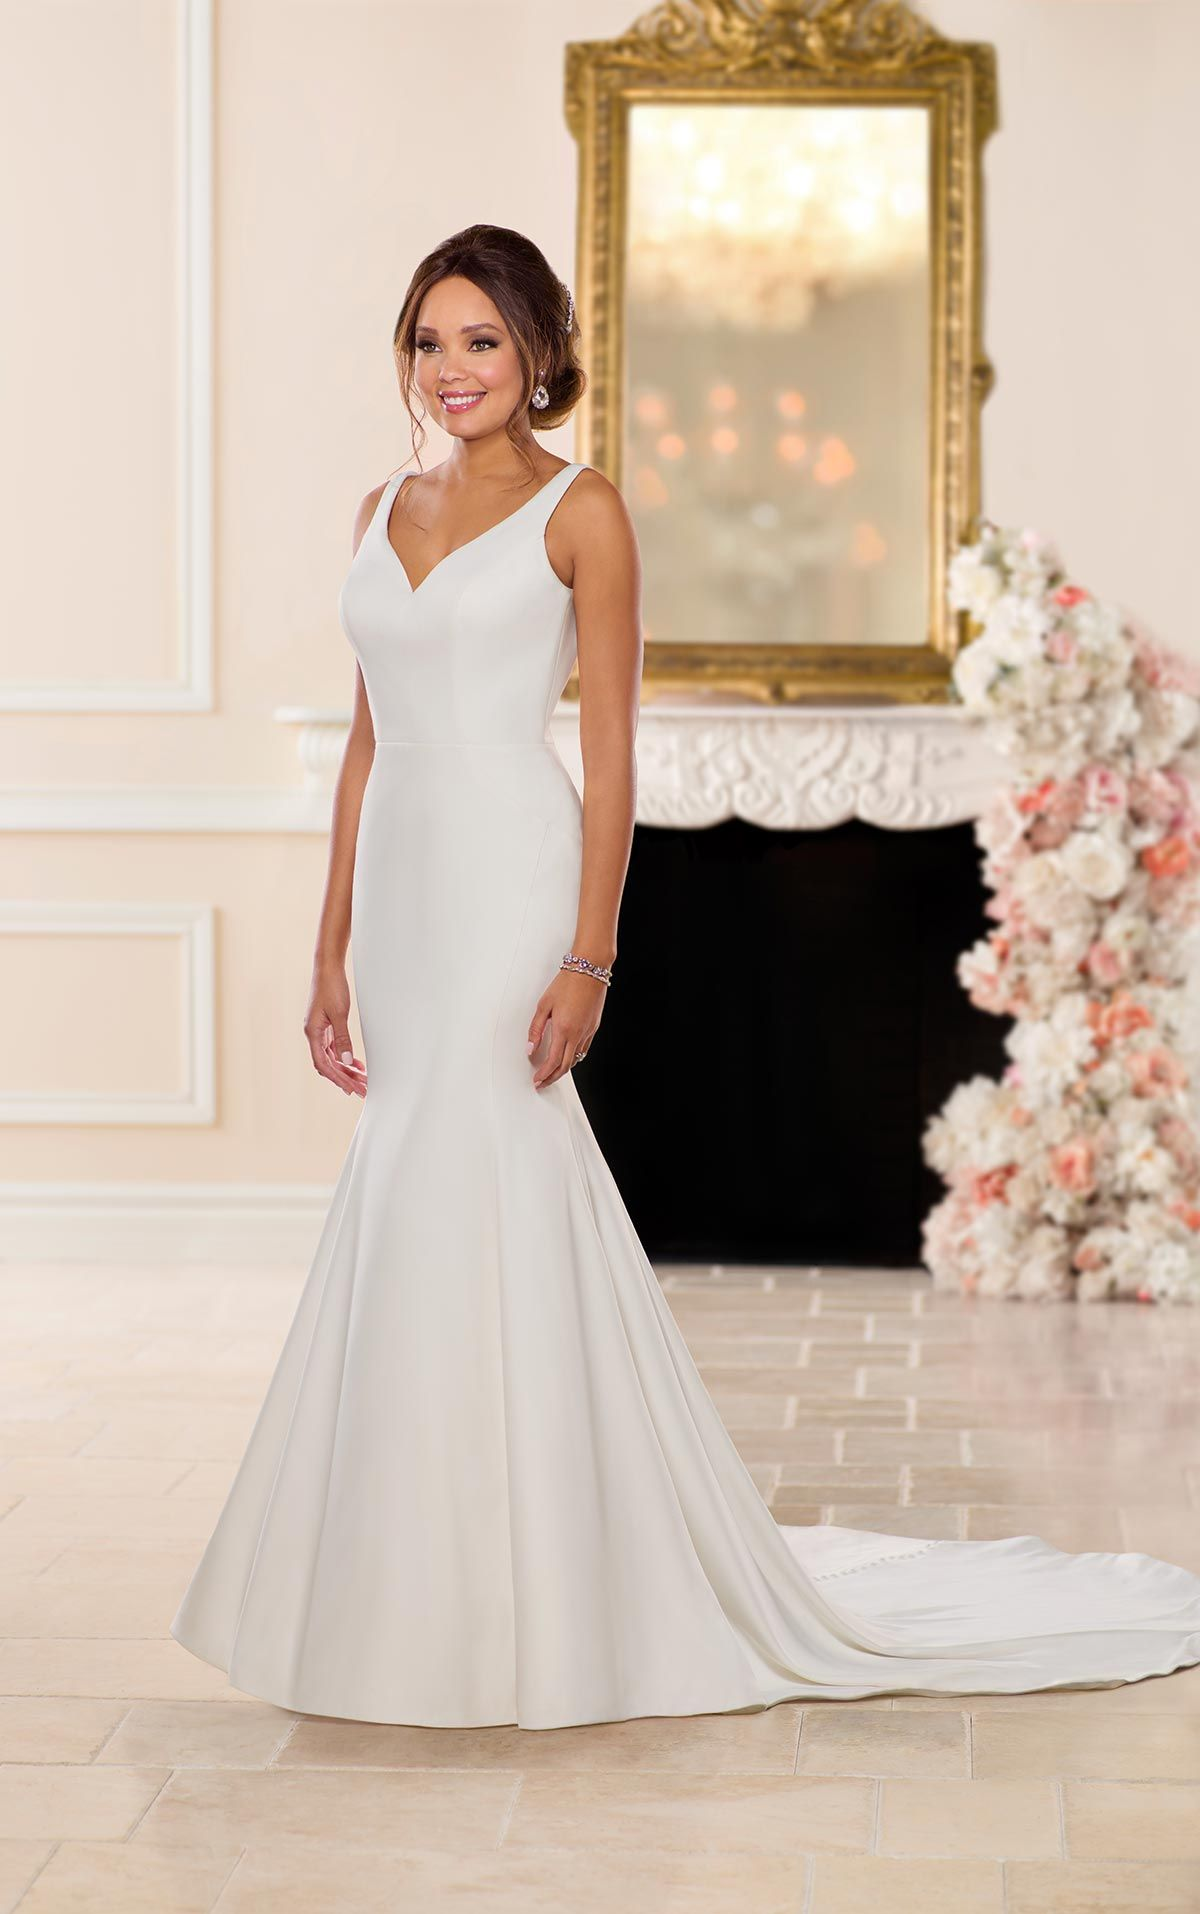 Perfect For The Bride Who Craves Simple Sophistication This Relaxed Trumpet Wedding Dress By Stella York Matt Dove Satin Fabric Slims Through